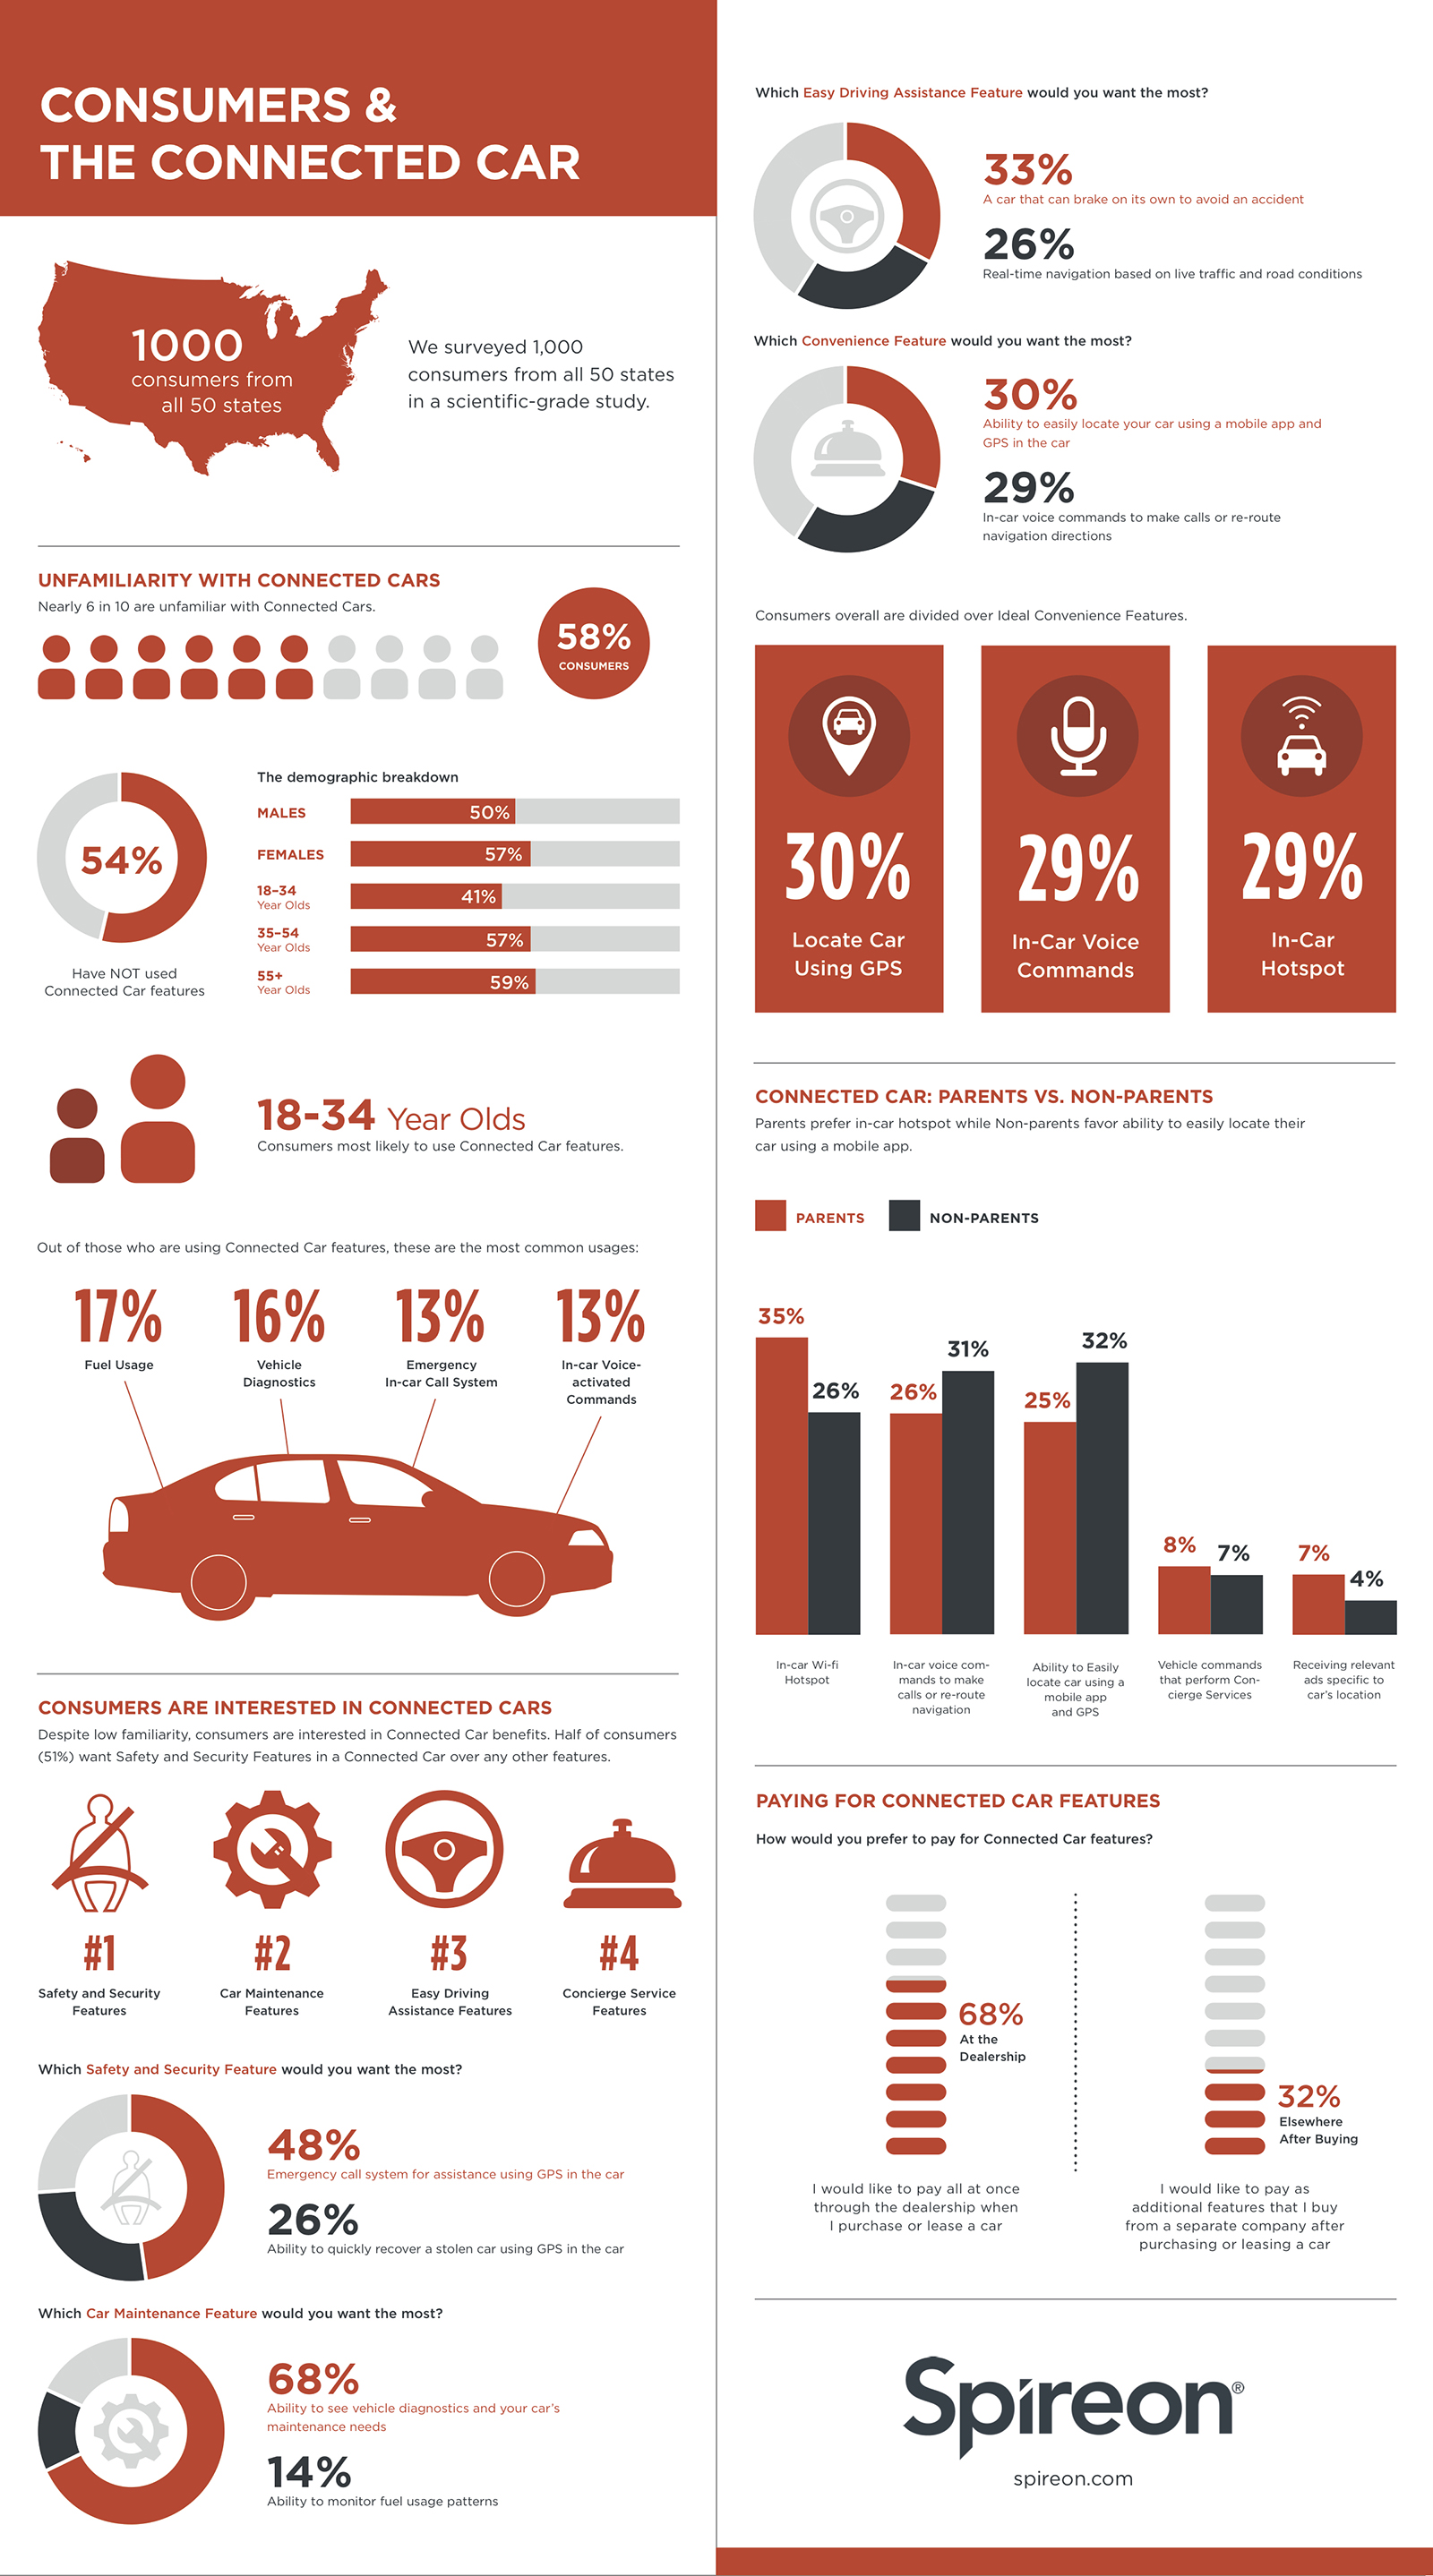 Consumers & the Connected Car